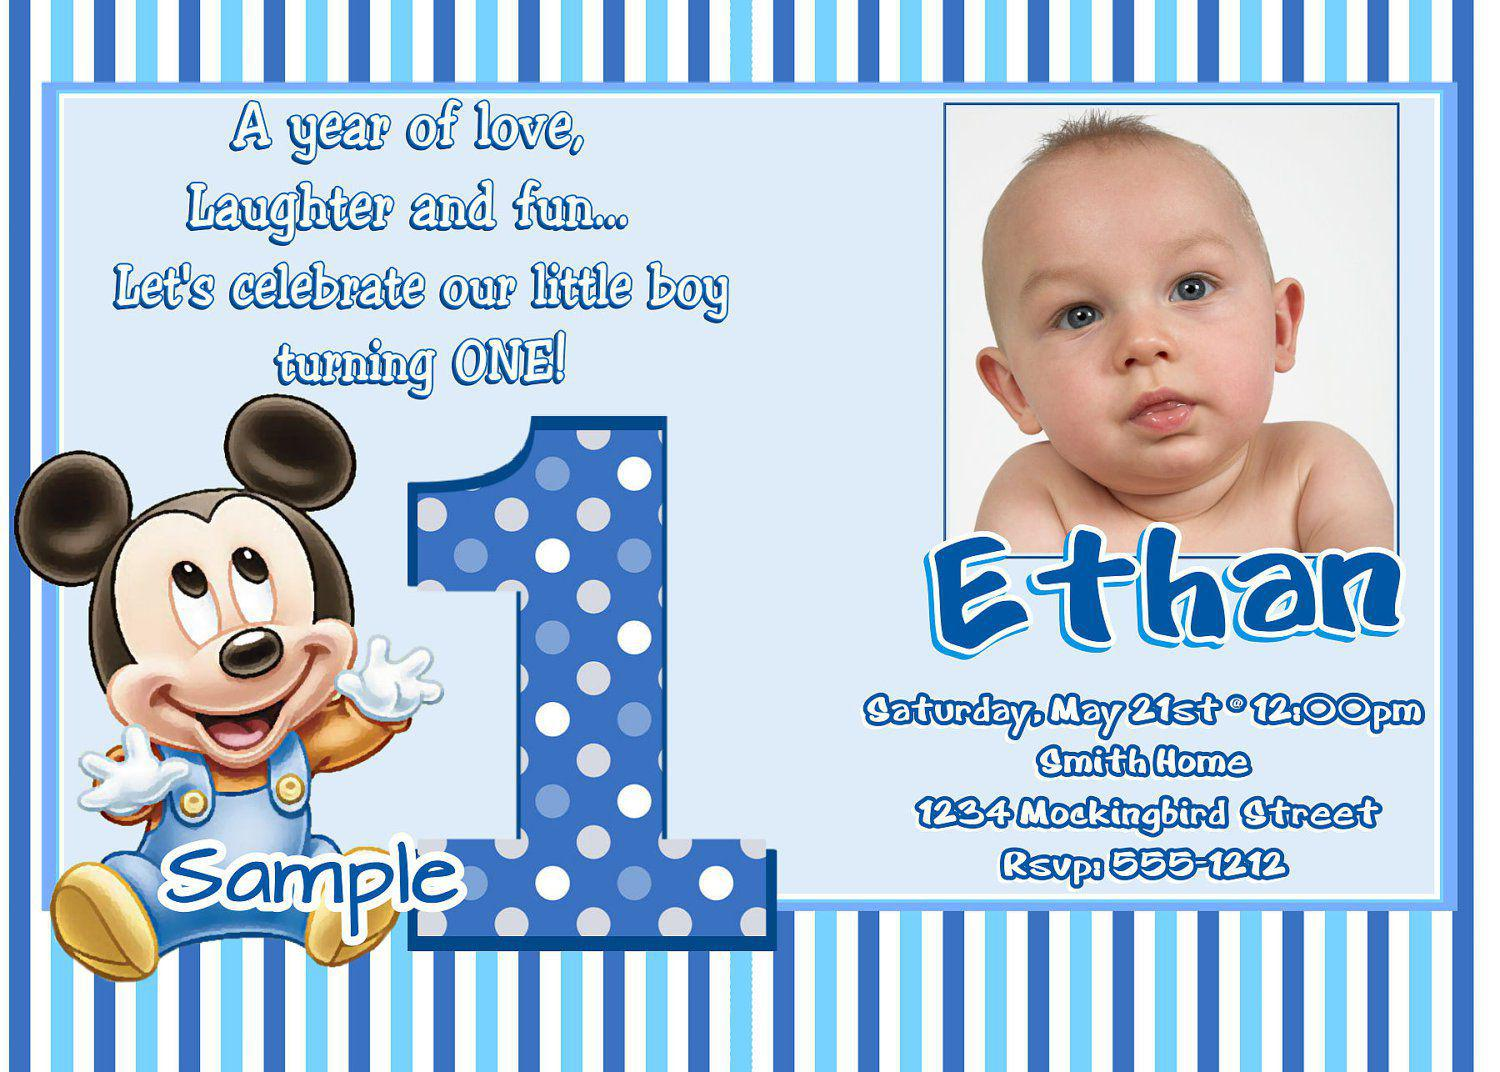 Invitation samples for birthday joselinohouse invitation samples for birthday filmwisefo